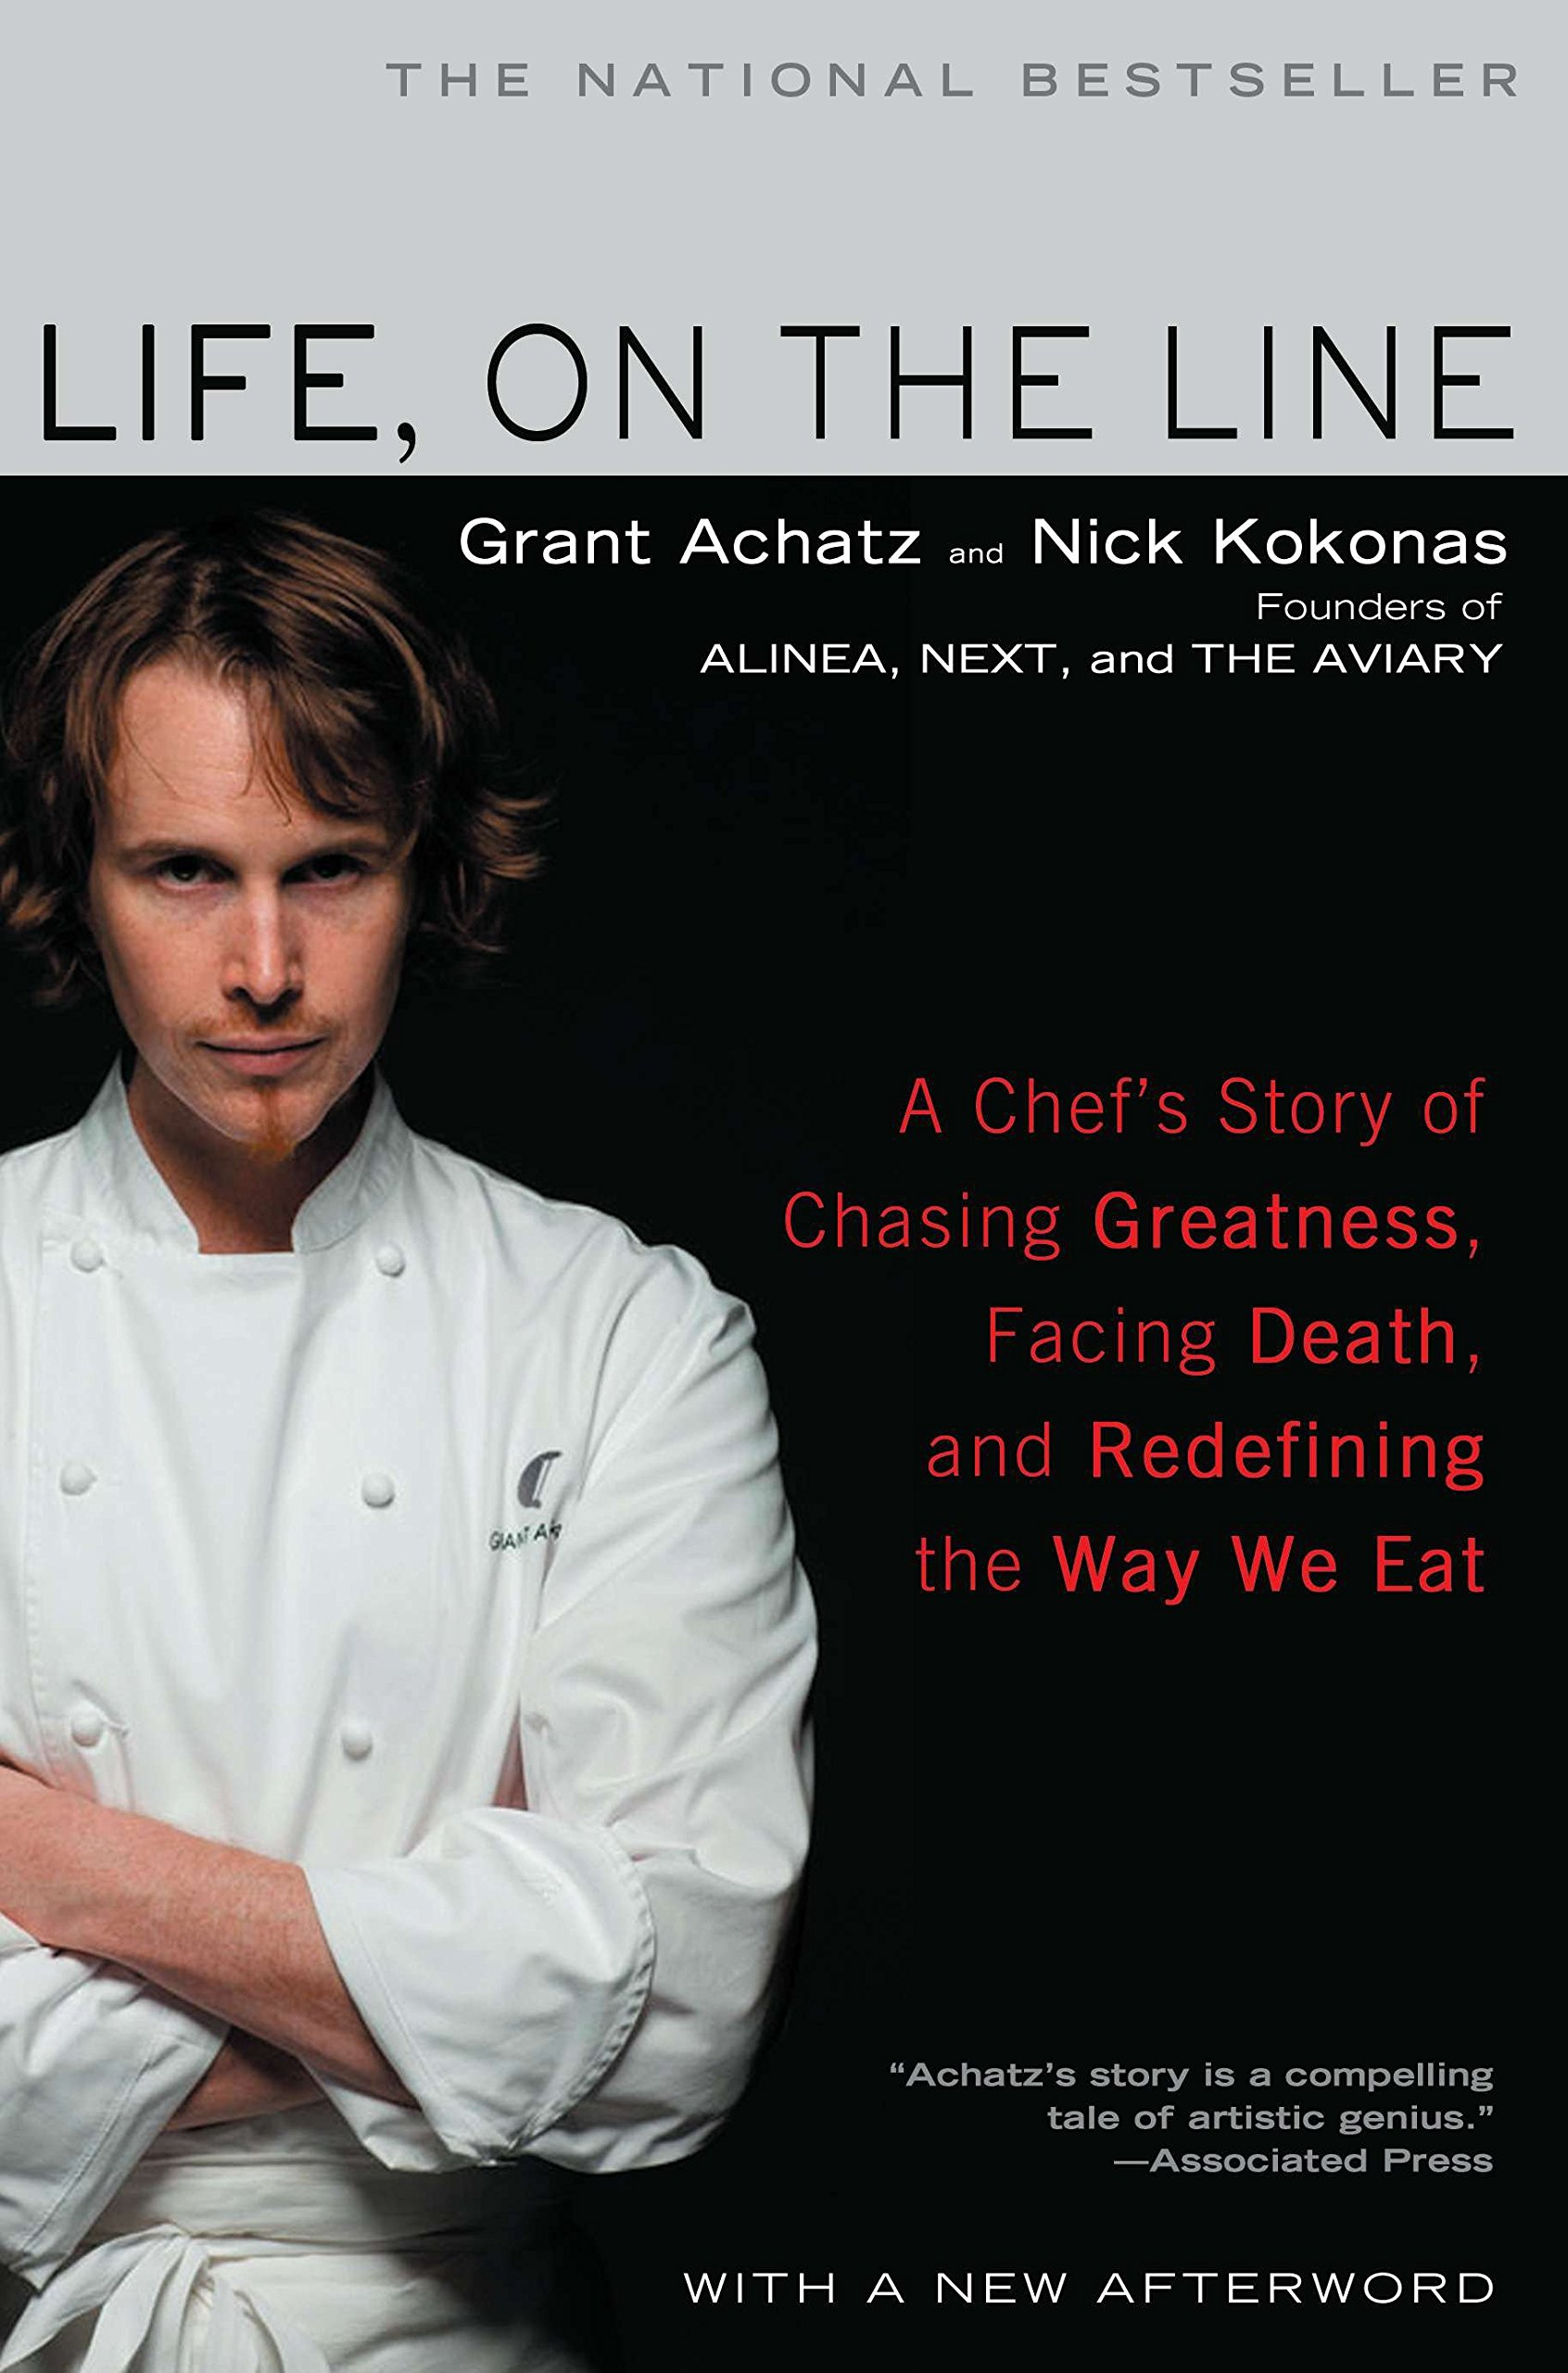 Life, on the Line: A Chef's Story of Chasing Greatness, Facing Death, and Redefining the Way We Eat by Gotham Books